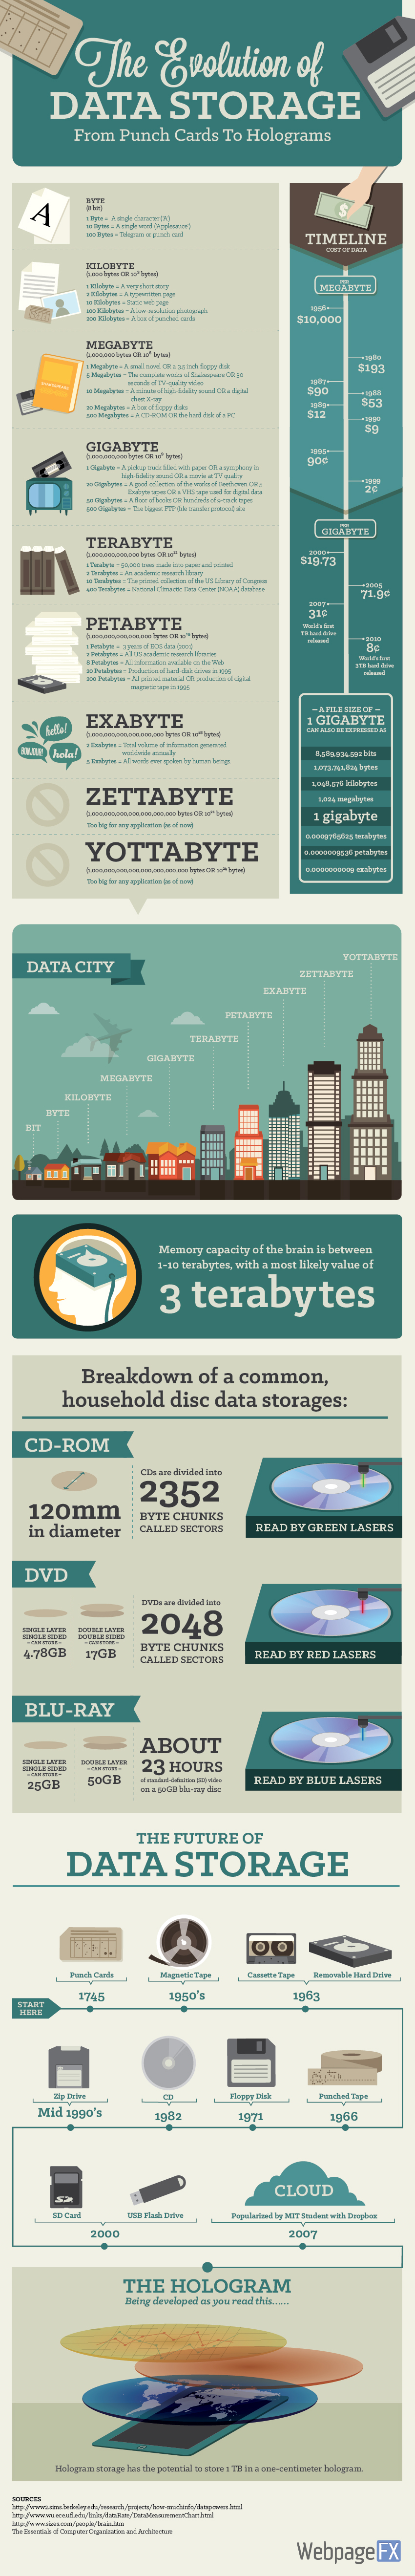 data-storage-infographic-zombieslounge